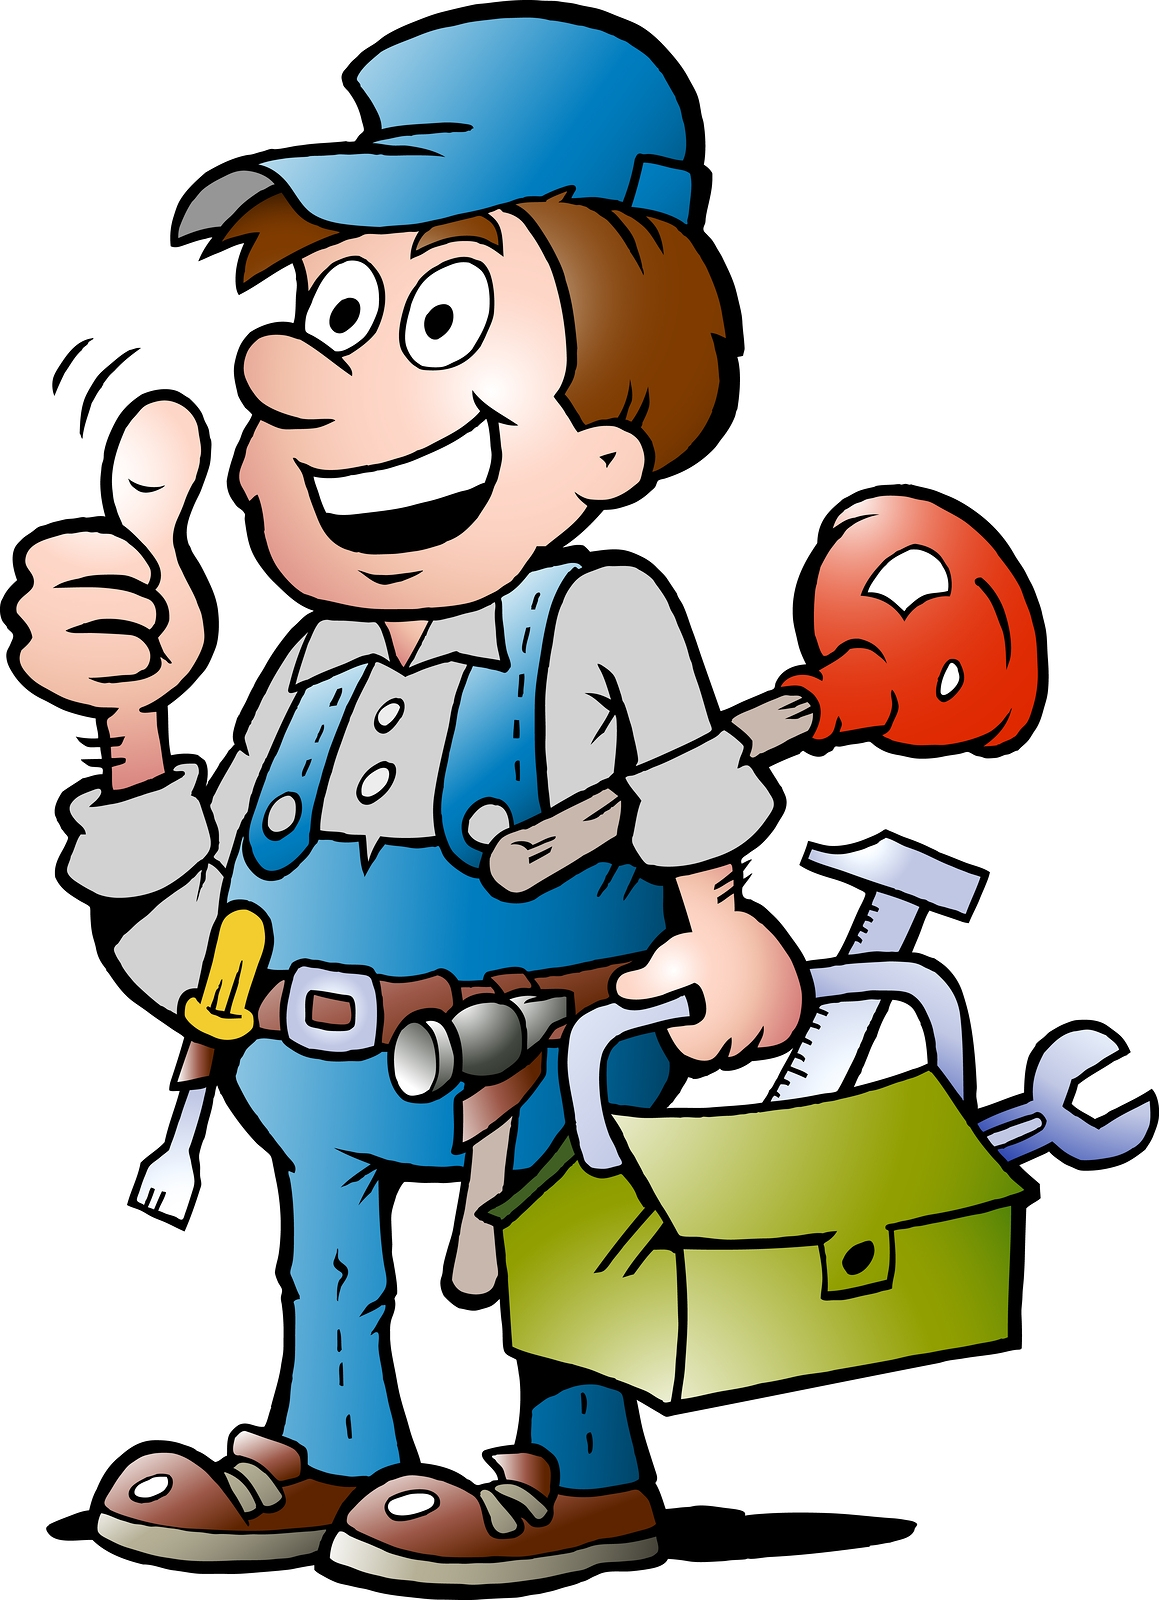 Handyman clipart maintenance guy. Free man cliparts download